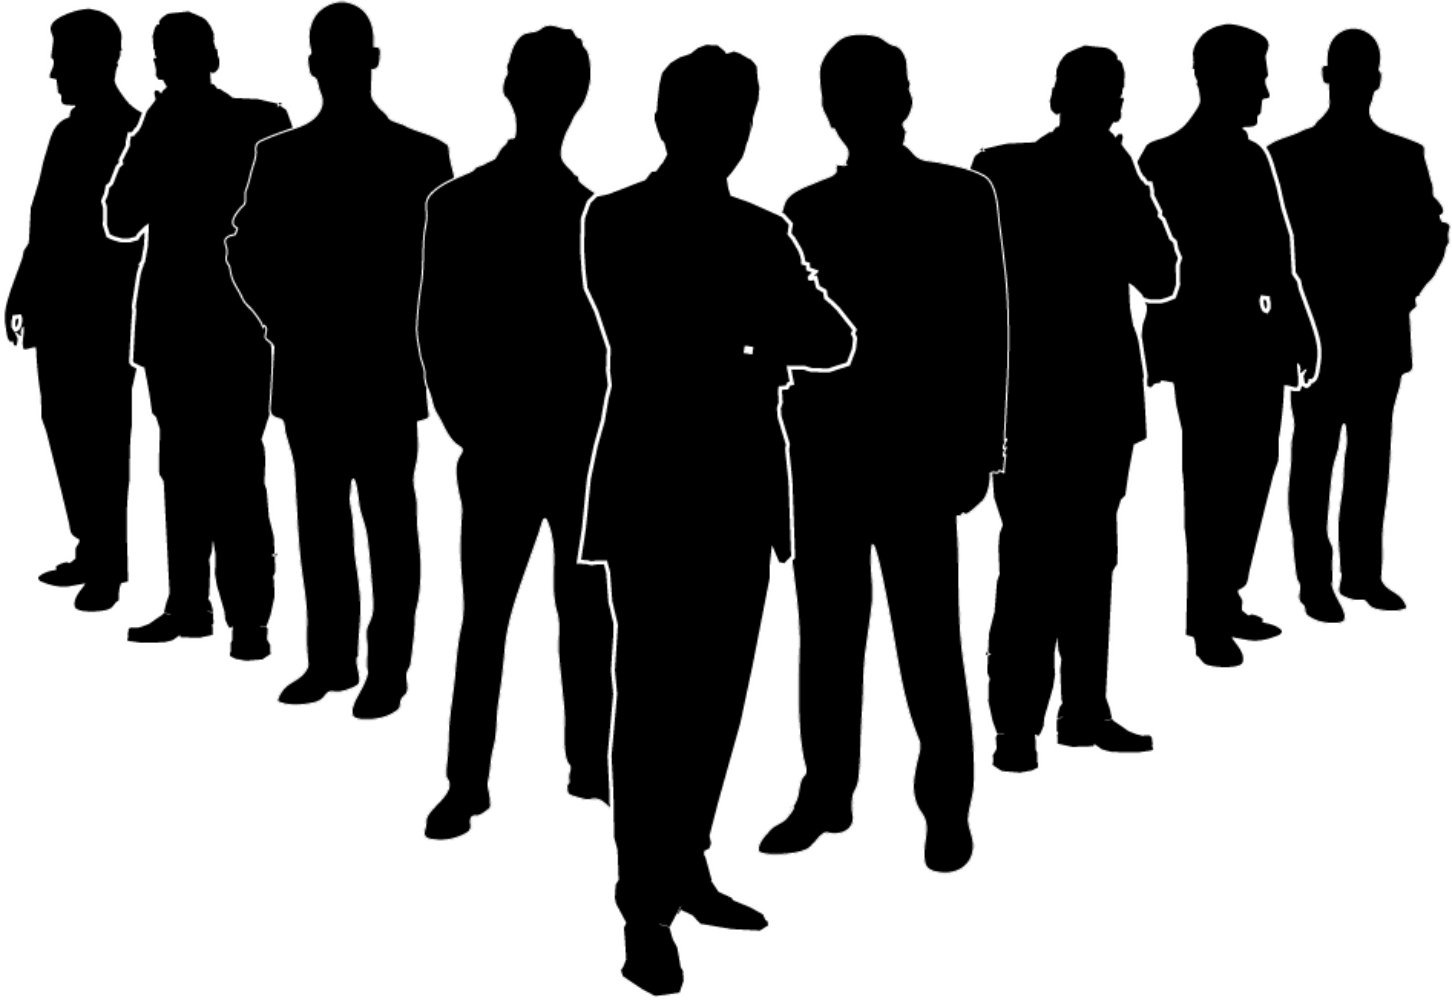 Business person silhouette png. Businessperson senior management the